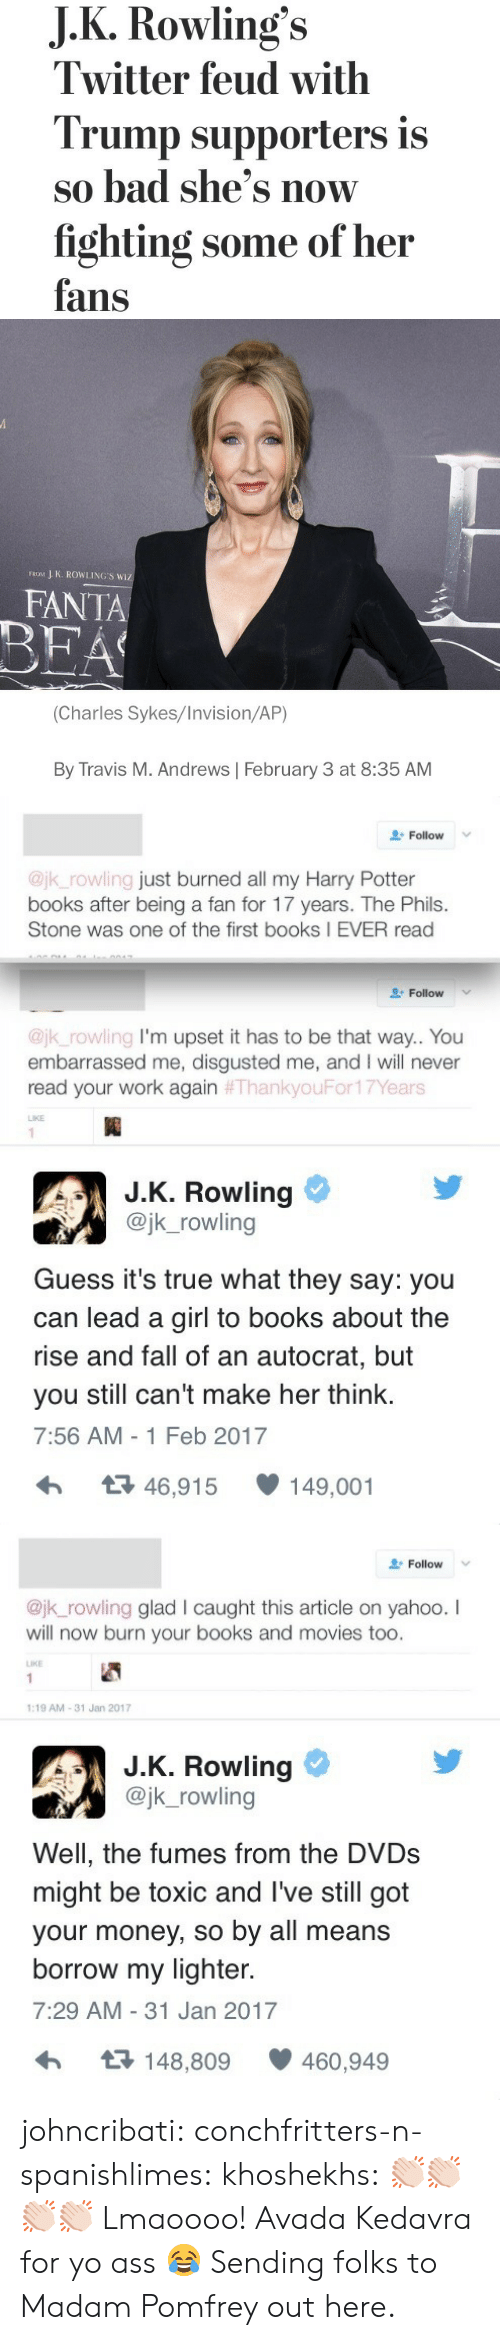 Feb 2017: J.K.Rowling's  Twitter feud with  Trump supporters is  so bad she's now  fighting some of her  fans   J K. ROWLING'S WIZ  FROM  FANTA  BEA  (Charles Sykes/Invision/AP)  By Travis M. Andrews February 3 at 8:35 AM   Follow  @jk_rowling just burned all my Harry Potter  books after being a fan for 17 years. The Phils.  Stone was one of the first books I EVER read  Follow  @jk_rowling I'm upset it has to be that way.. You  embarrassed me, disgusted me, and I will never  read your work again #ThankyouFor17Years  LIKE  1  J.K. Rowling  @jk_rowling  Guess it's true what they say: you  can lead a girl to books about the  rise and fall of an autocrat, but  make her think.  you still can't  7:56 AM -1 Feb 2017  t46,915  149,001   Follow  @jk_rowling glad l caught this article on yahoo. I  will now burn your books and movies too.  LIKE  1  1:19 AM-31 Jan 2017  J.K. Rowling  @jk_rowling  Well, the fumes from the DVDS  might be toxic and I've still got  your money, so by all means  borrow my lighter.  7:29 AM 31 Jan 2017  t148,809  460,949 johncribati: conchfritters-n-spanishlimes:  khoshekhs: 👏🏻👏🏻👏🏻👏🏻  Lmaoooo! Avada Kedavra for yo ass 😂   Sending folks to Madam Pomfrey out here.